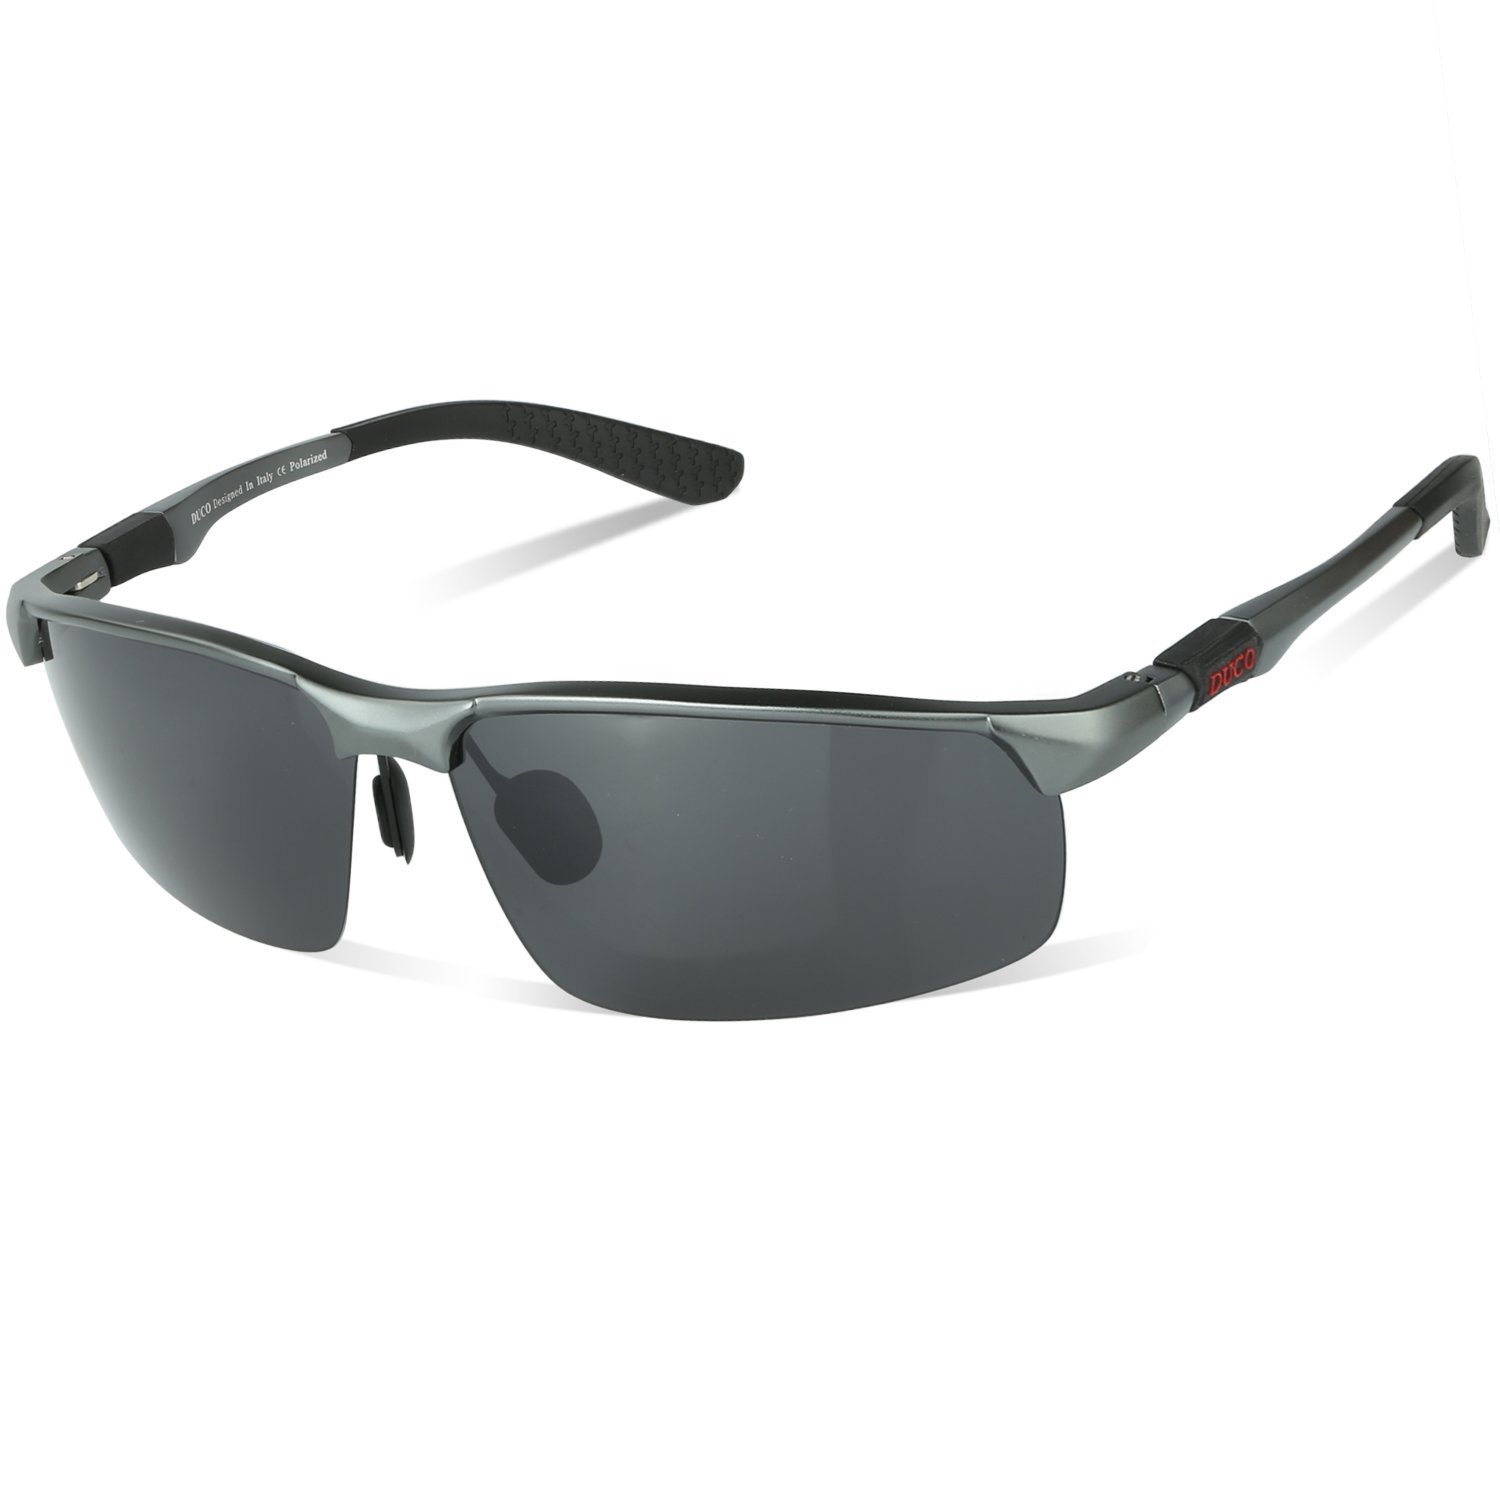 Duco Men's Fashion Driving Polarized Sunglasses Sports Eyewear Fishing Goggles with Al-Mg Frame 8188(Gunmetal Frame,Gray Lens) by DUCO